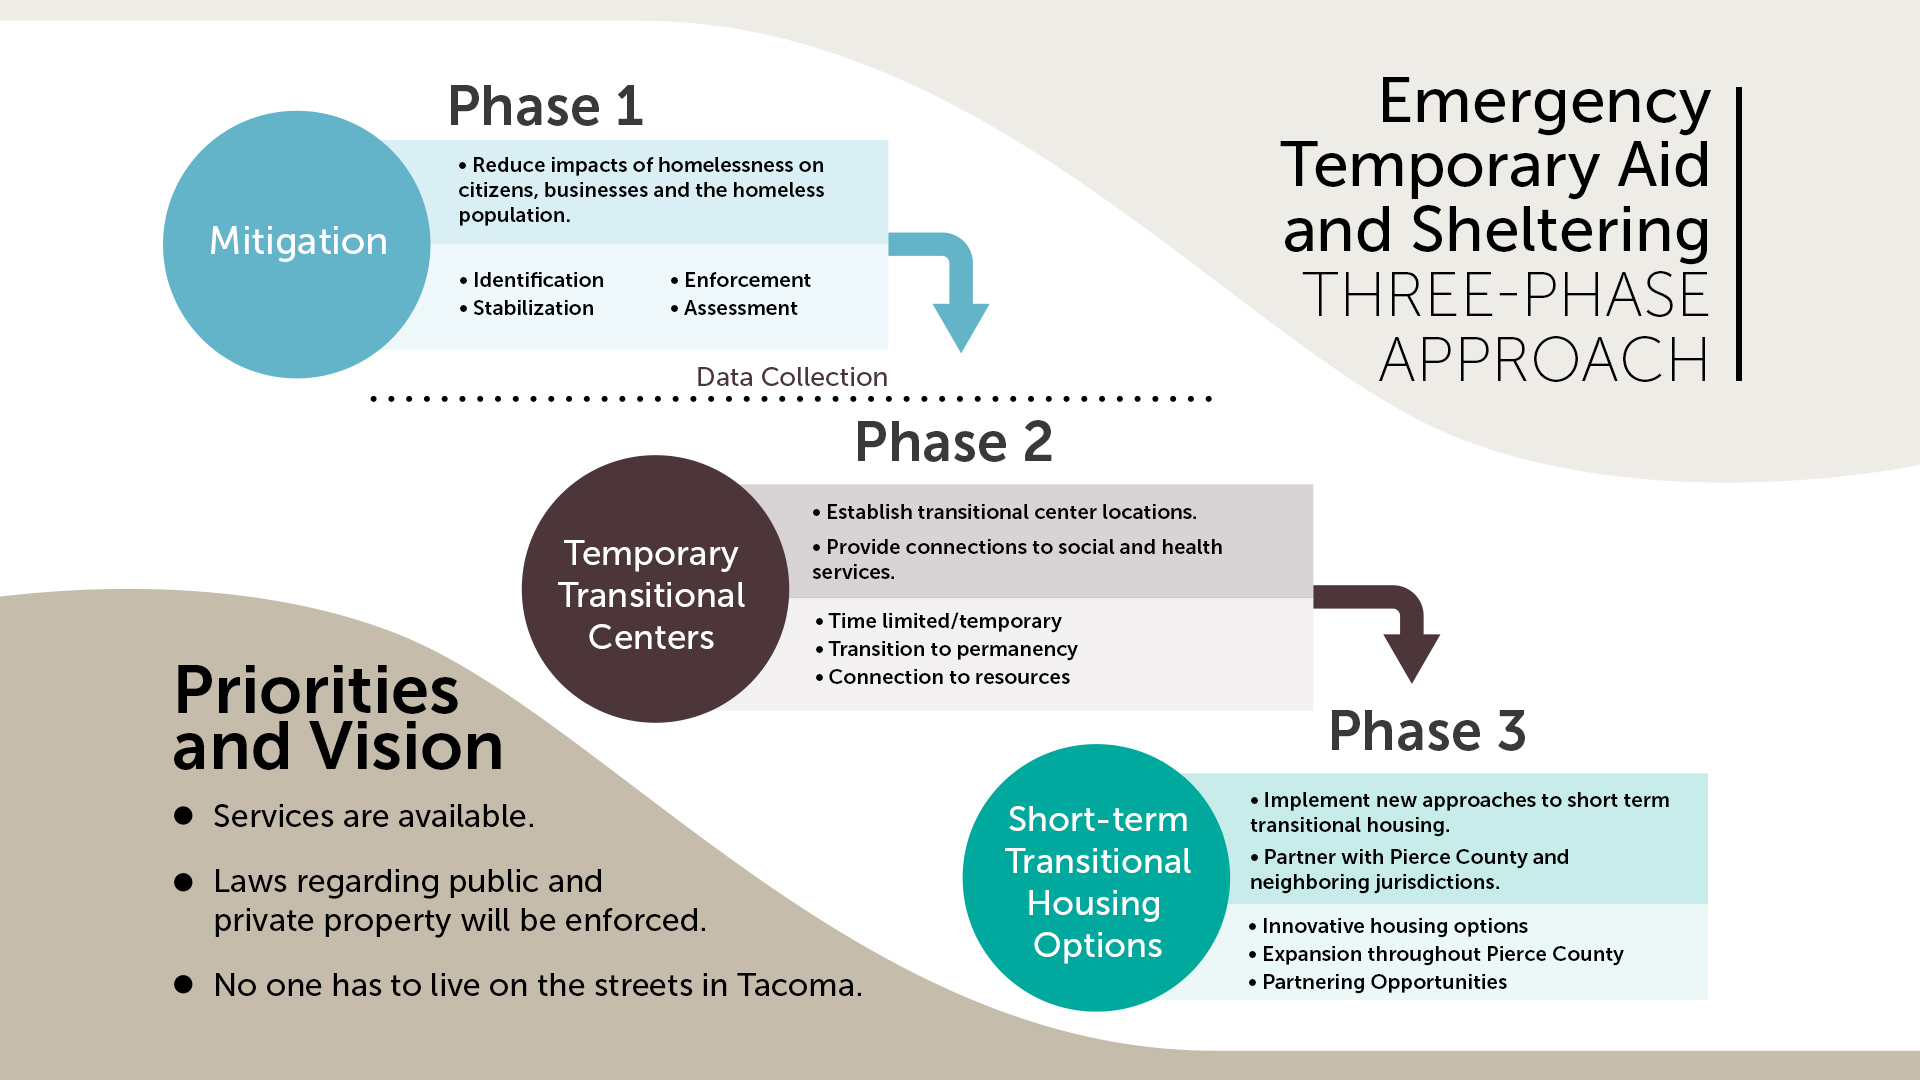 Emergency Temporary Aid and Sheltering Program graphic